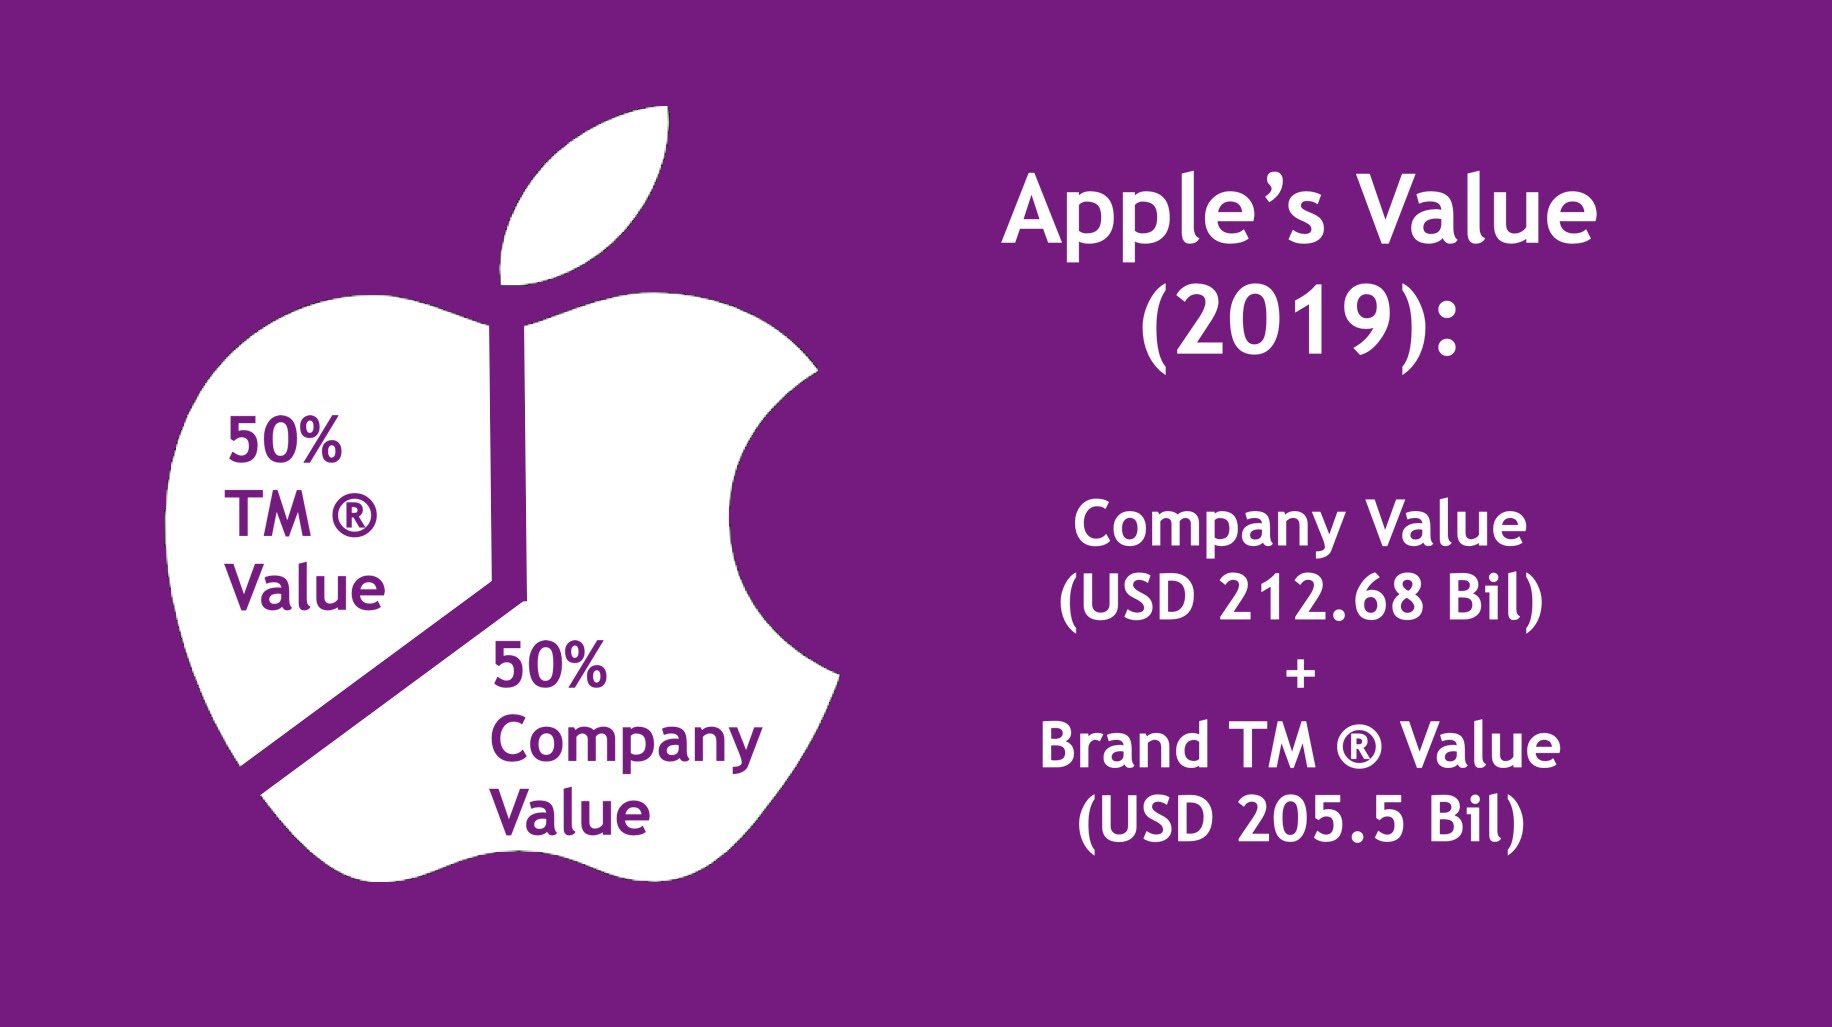 Apple Trademark Brand Value 2019